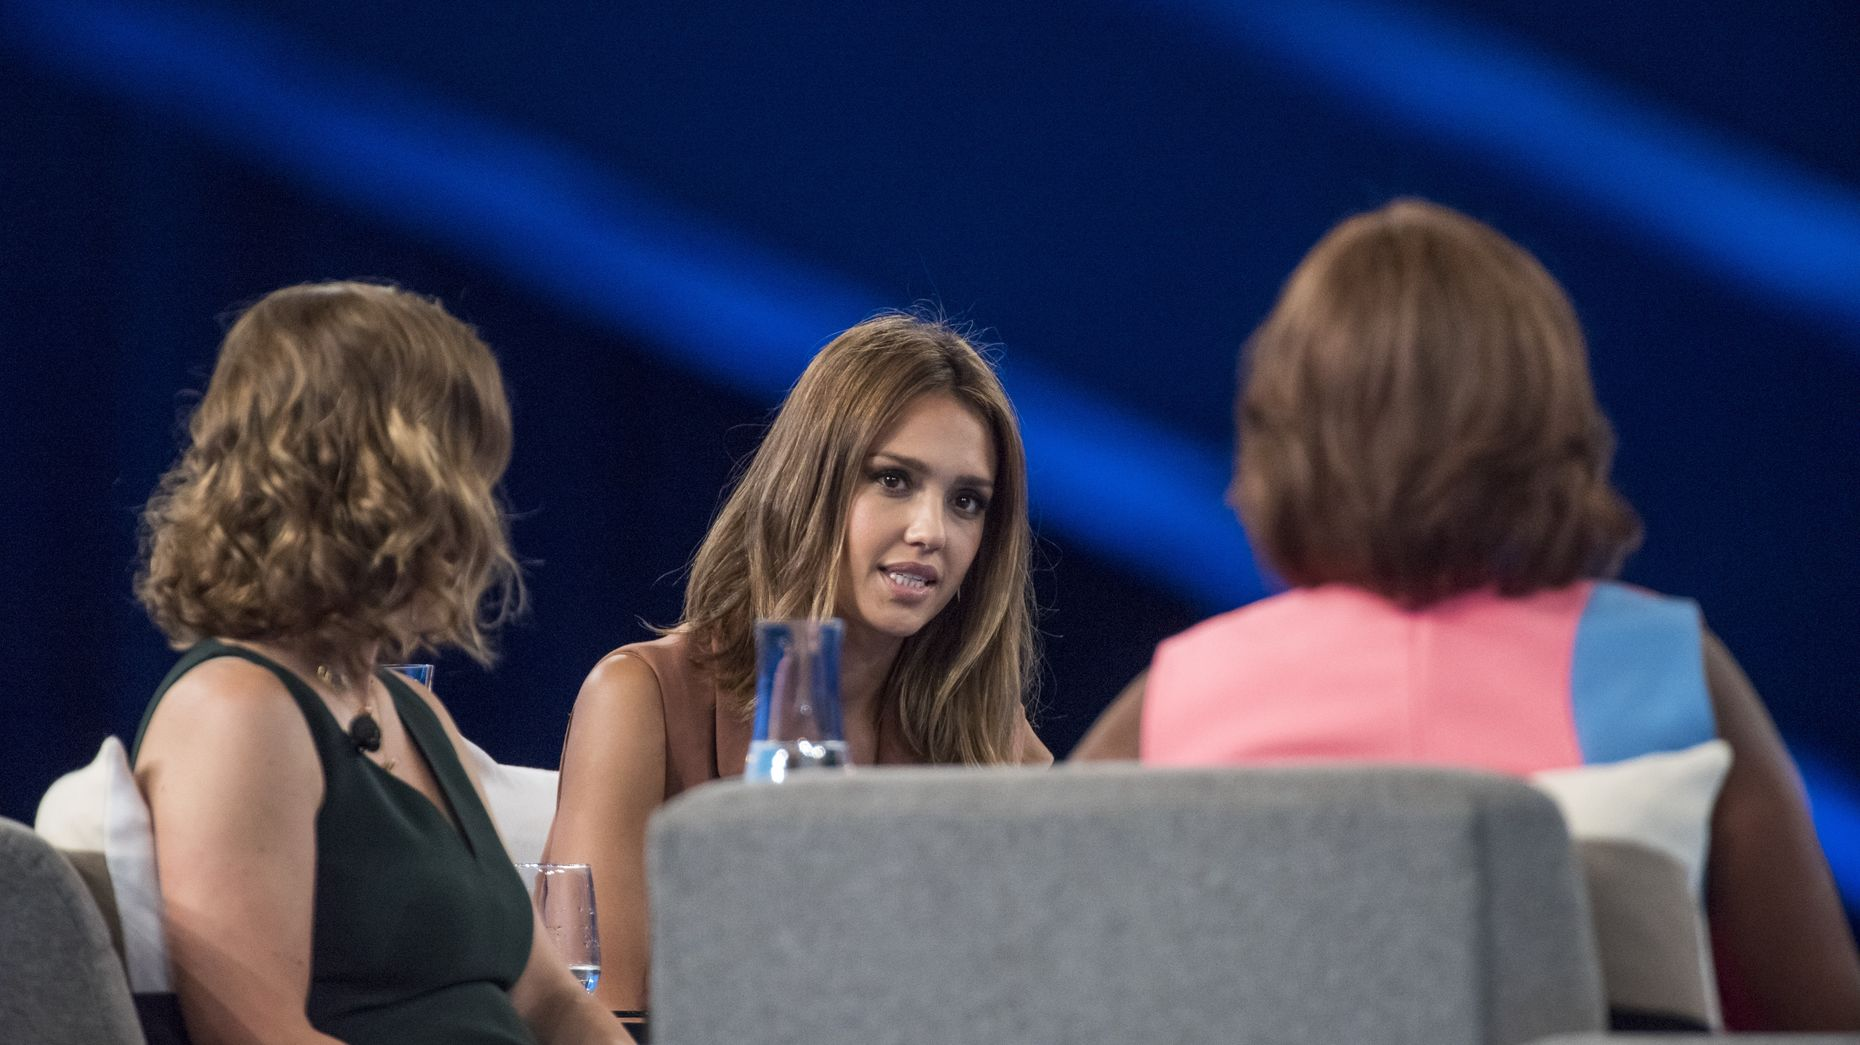 Honest Co. co-founder Jessica Alba. Photo by Bloomberg.